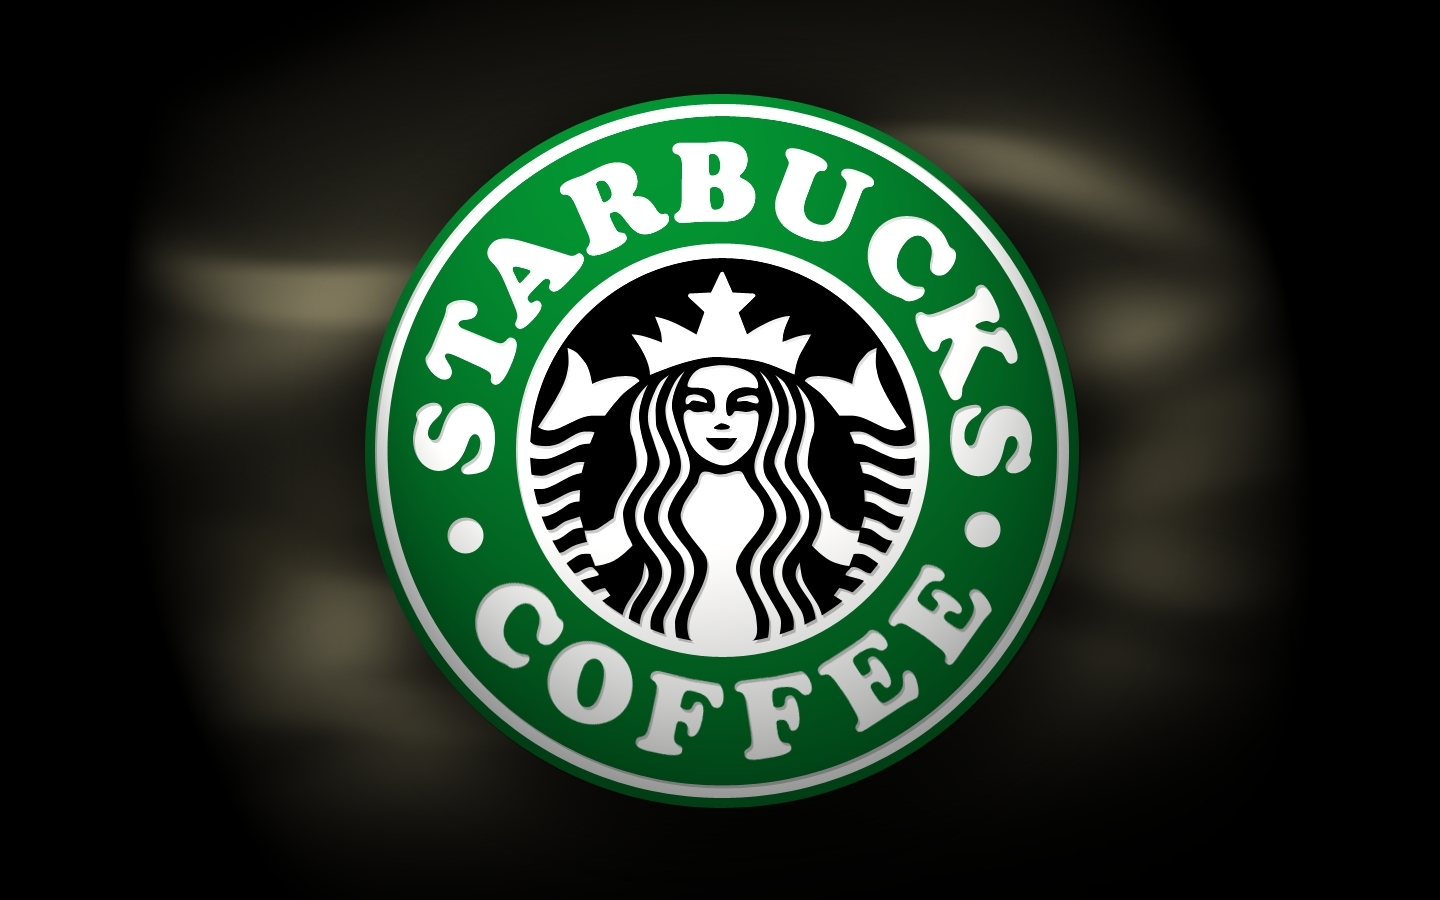 Starbucks Logo Wallpaper   Starbucks Wallpaper 3208054 1440x900